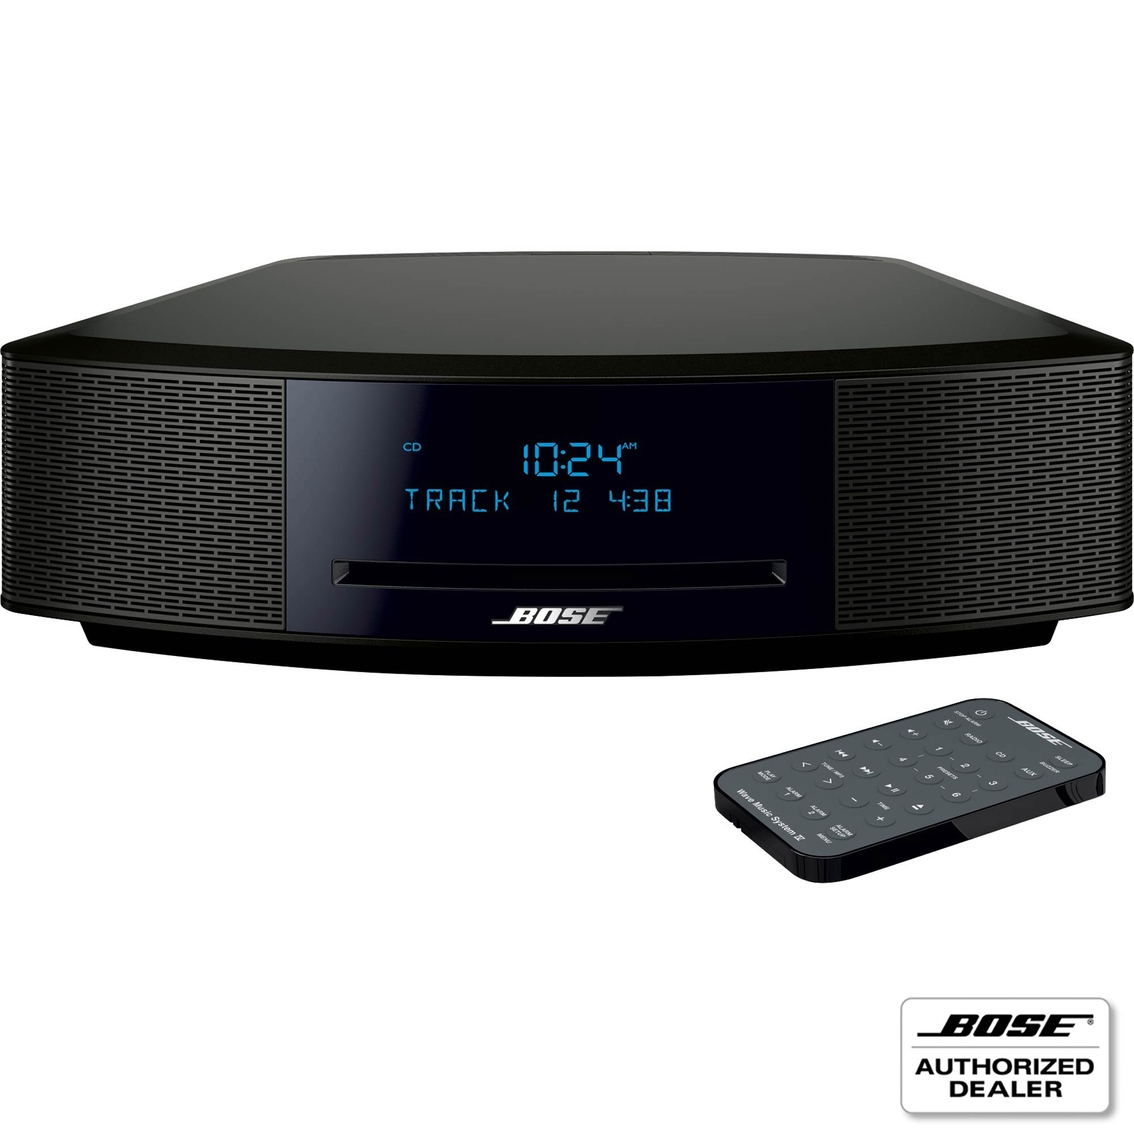 bose wave music system iv super daily special october 9. Black Bedroom Furniture Sets. Home Design Ideas